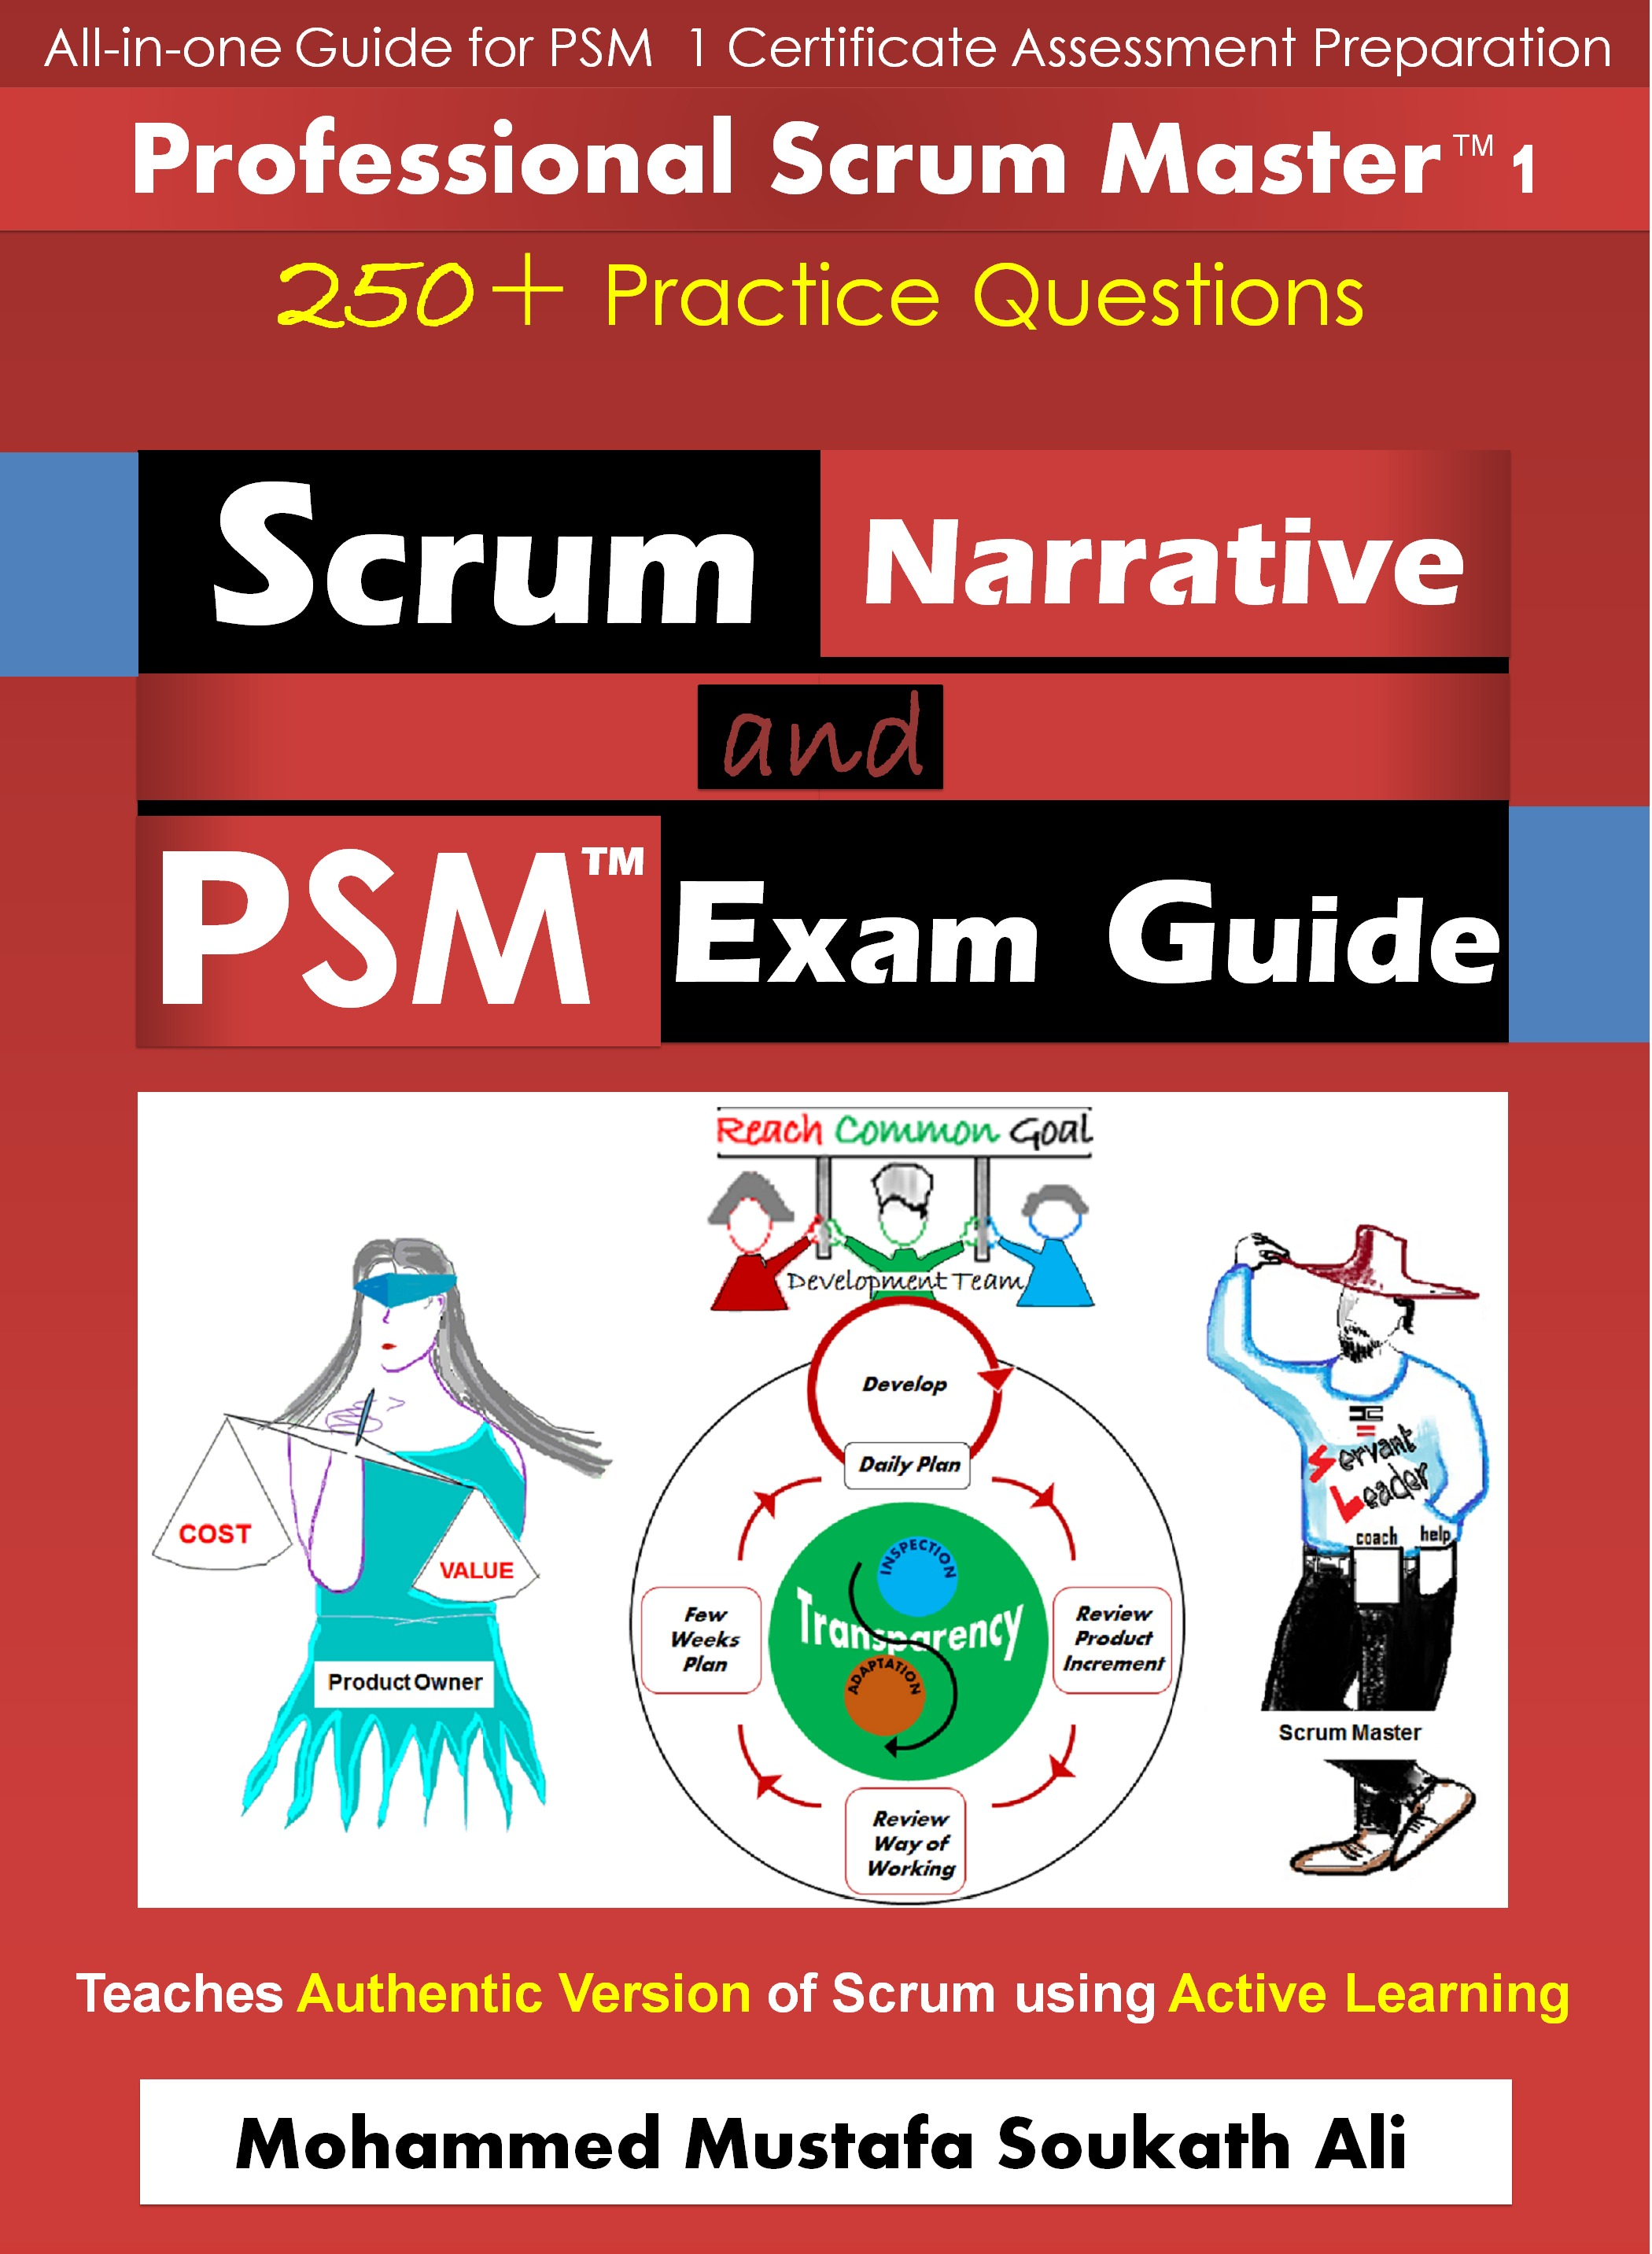 Scrum Narrative and PSM Exam Guide Mohammed Musthafa Soukath Ali